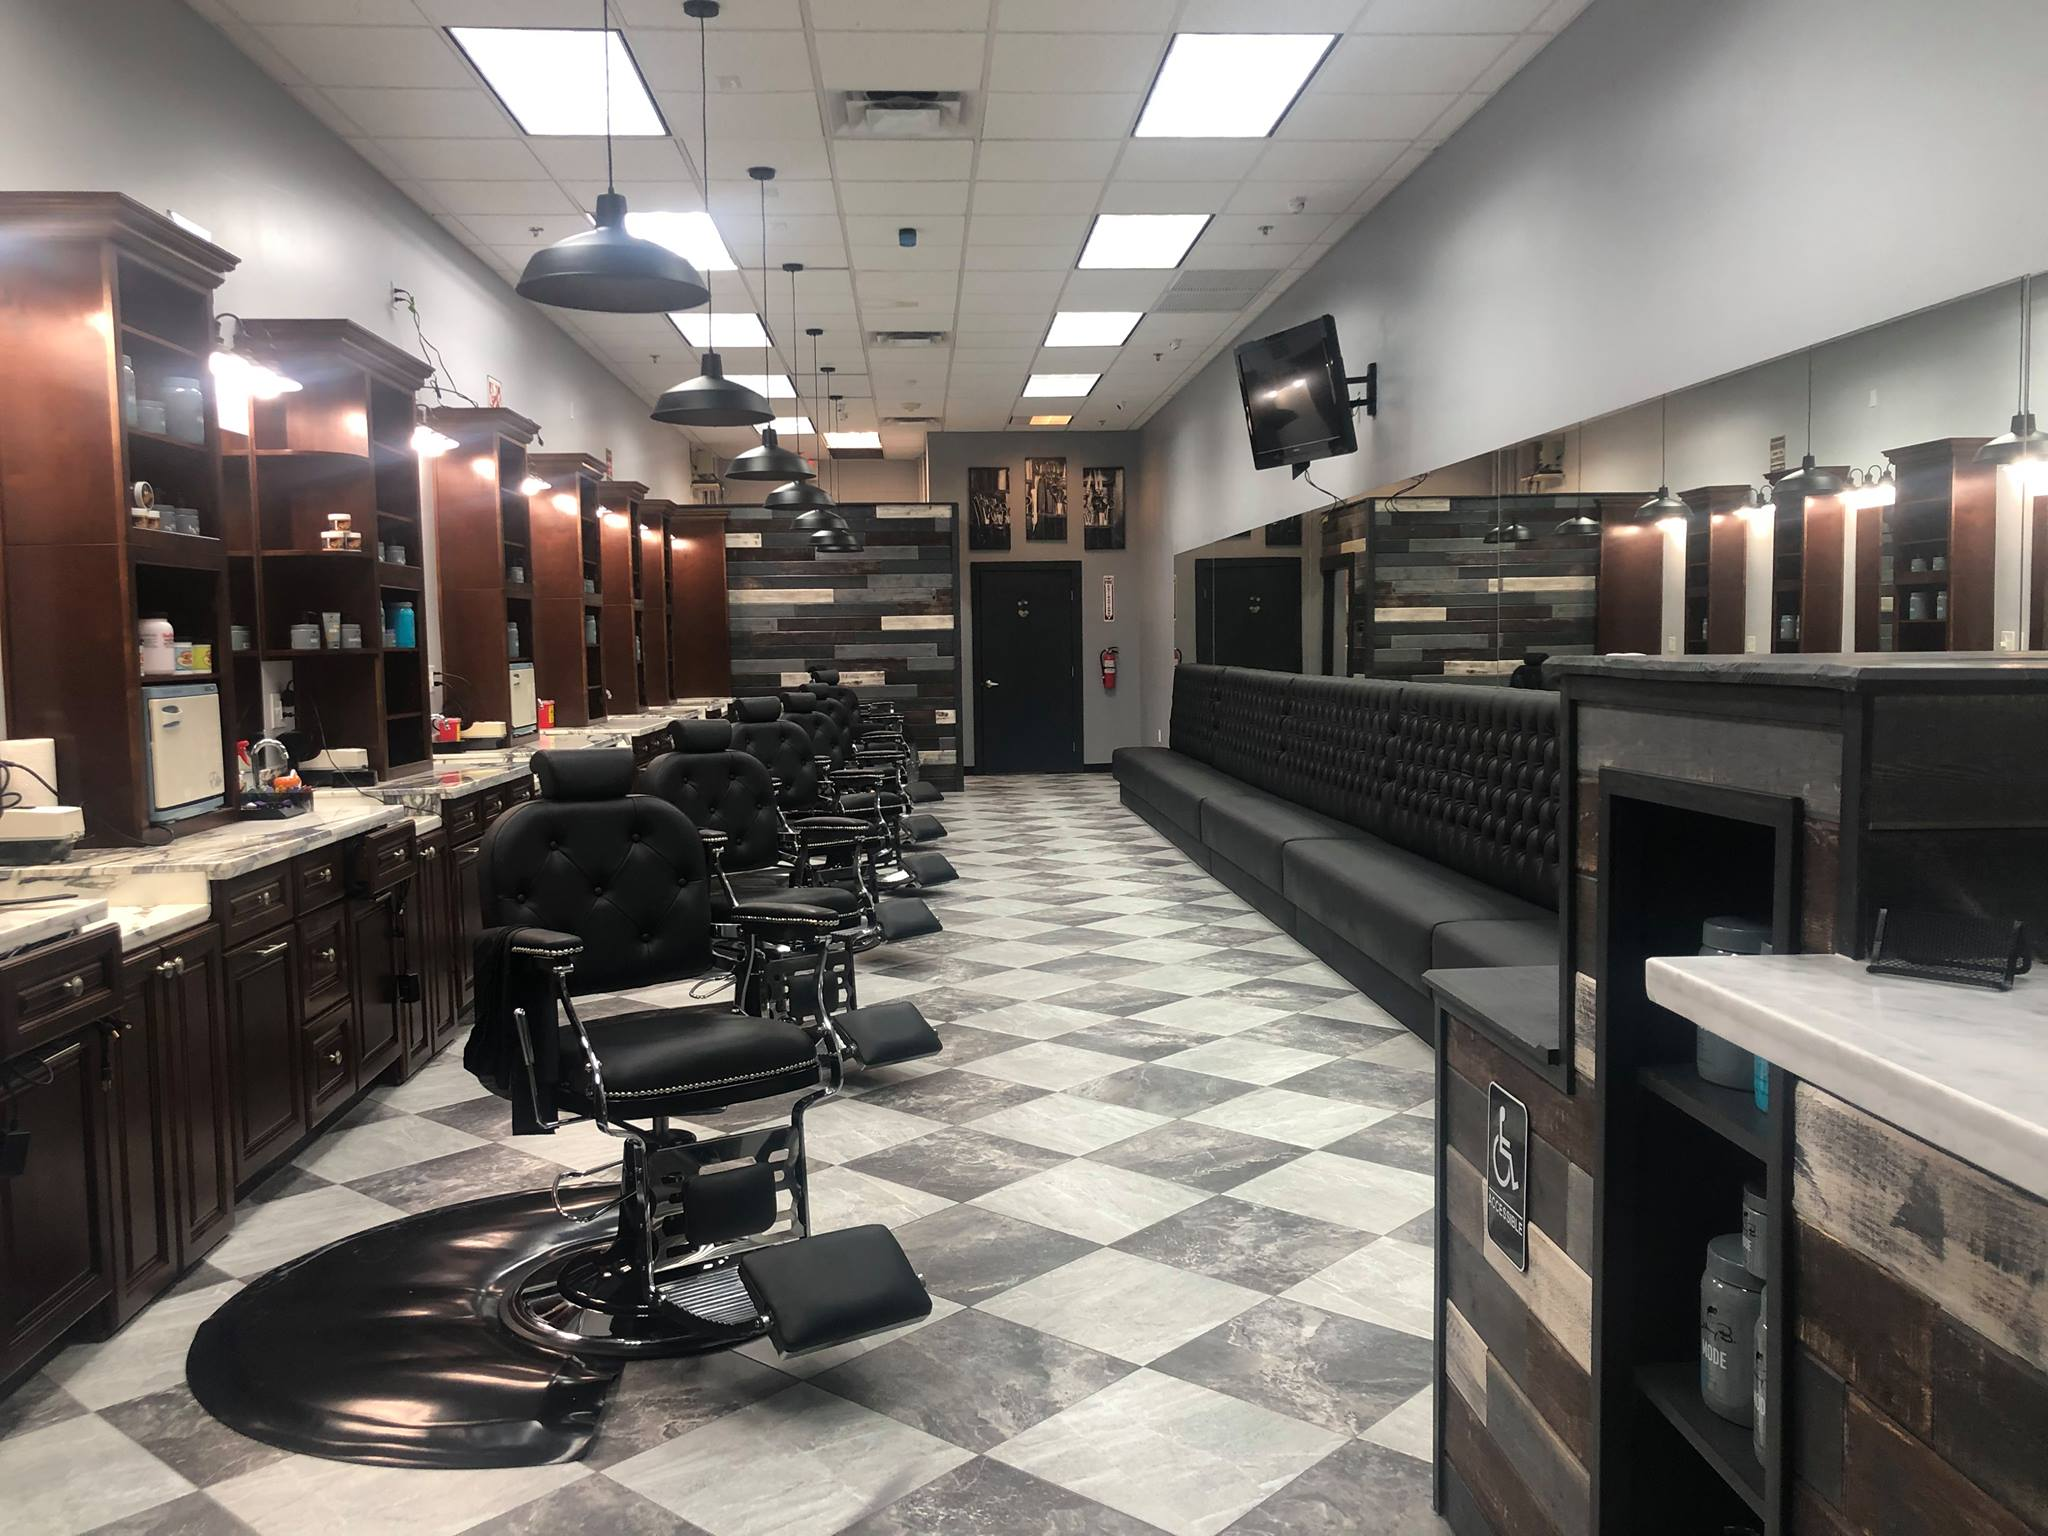 InstaCutz Barbershop - Goodyear, AZ 85395 - (623)535-1551 | ShowMeLocal.com